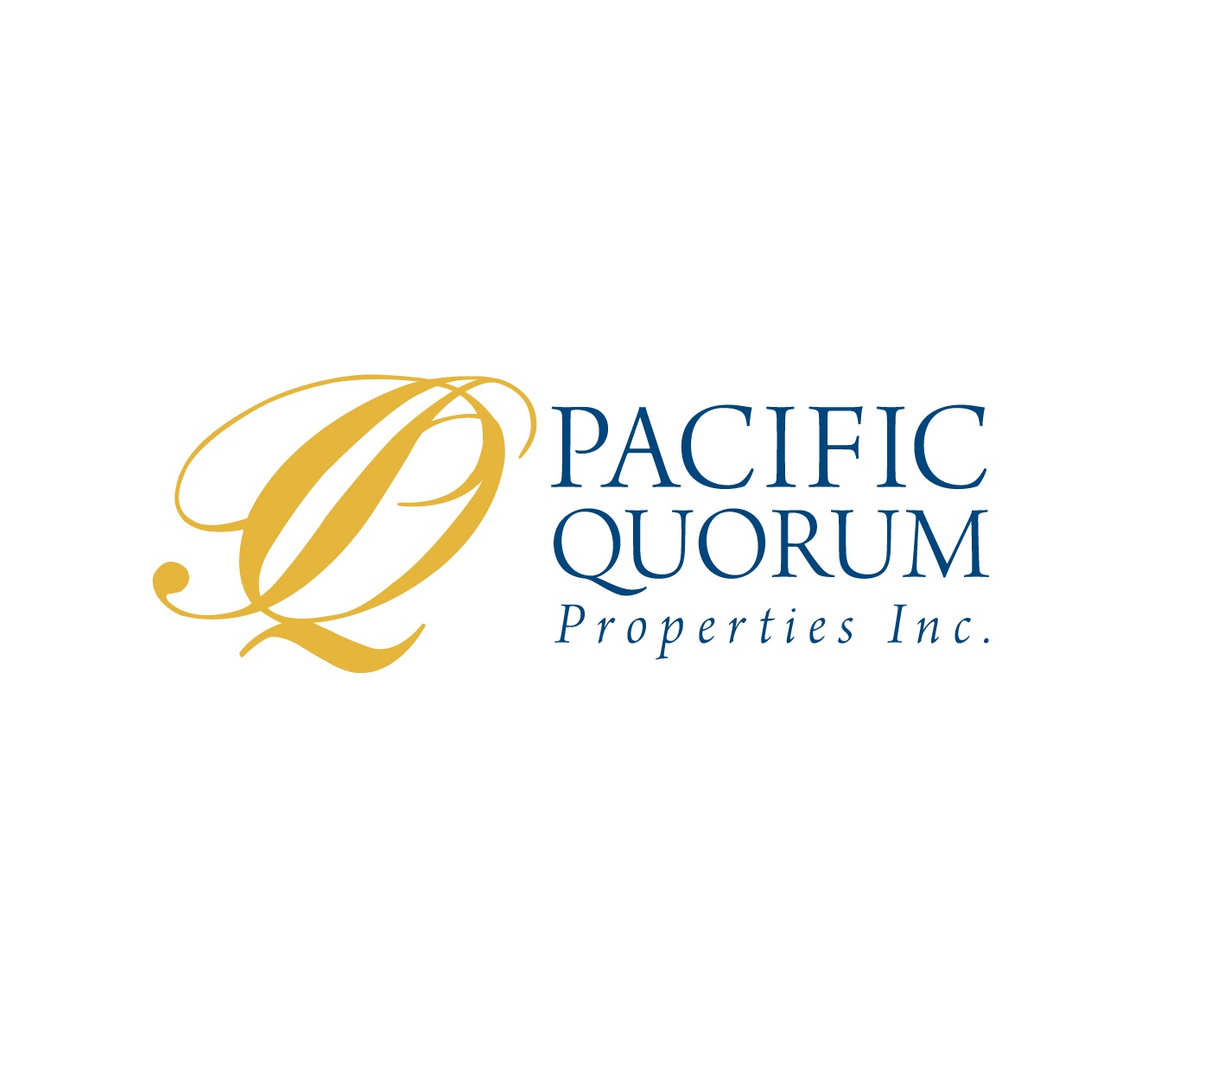 Pacific Quorum Properties